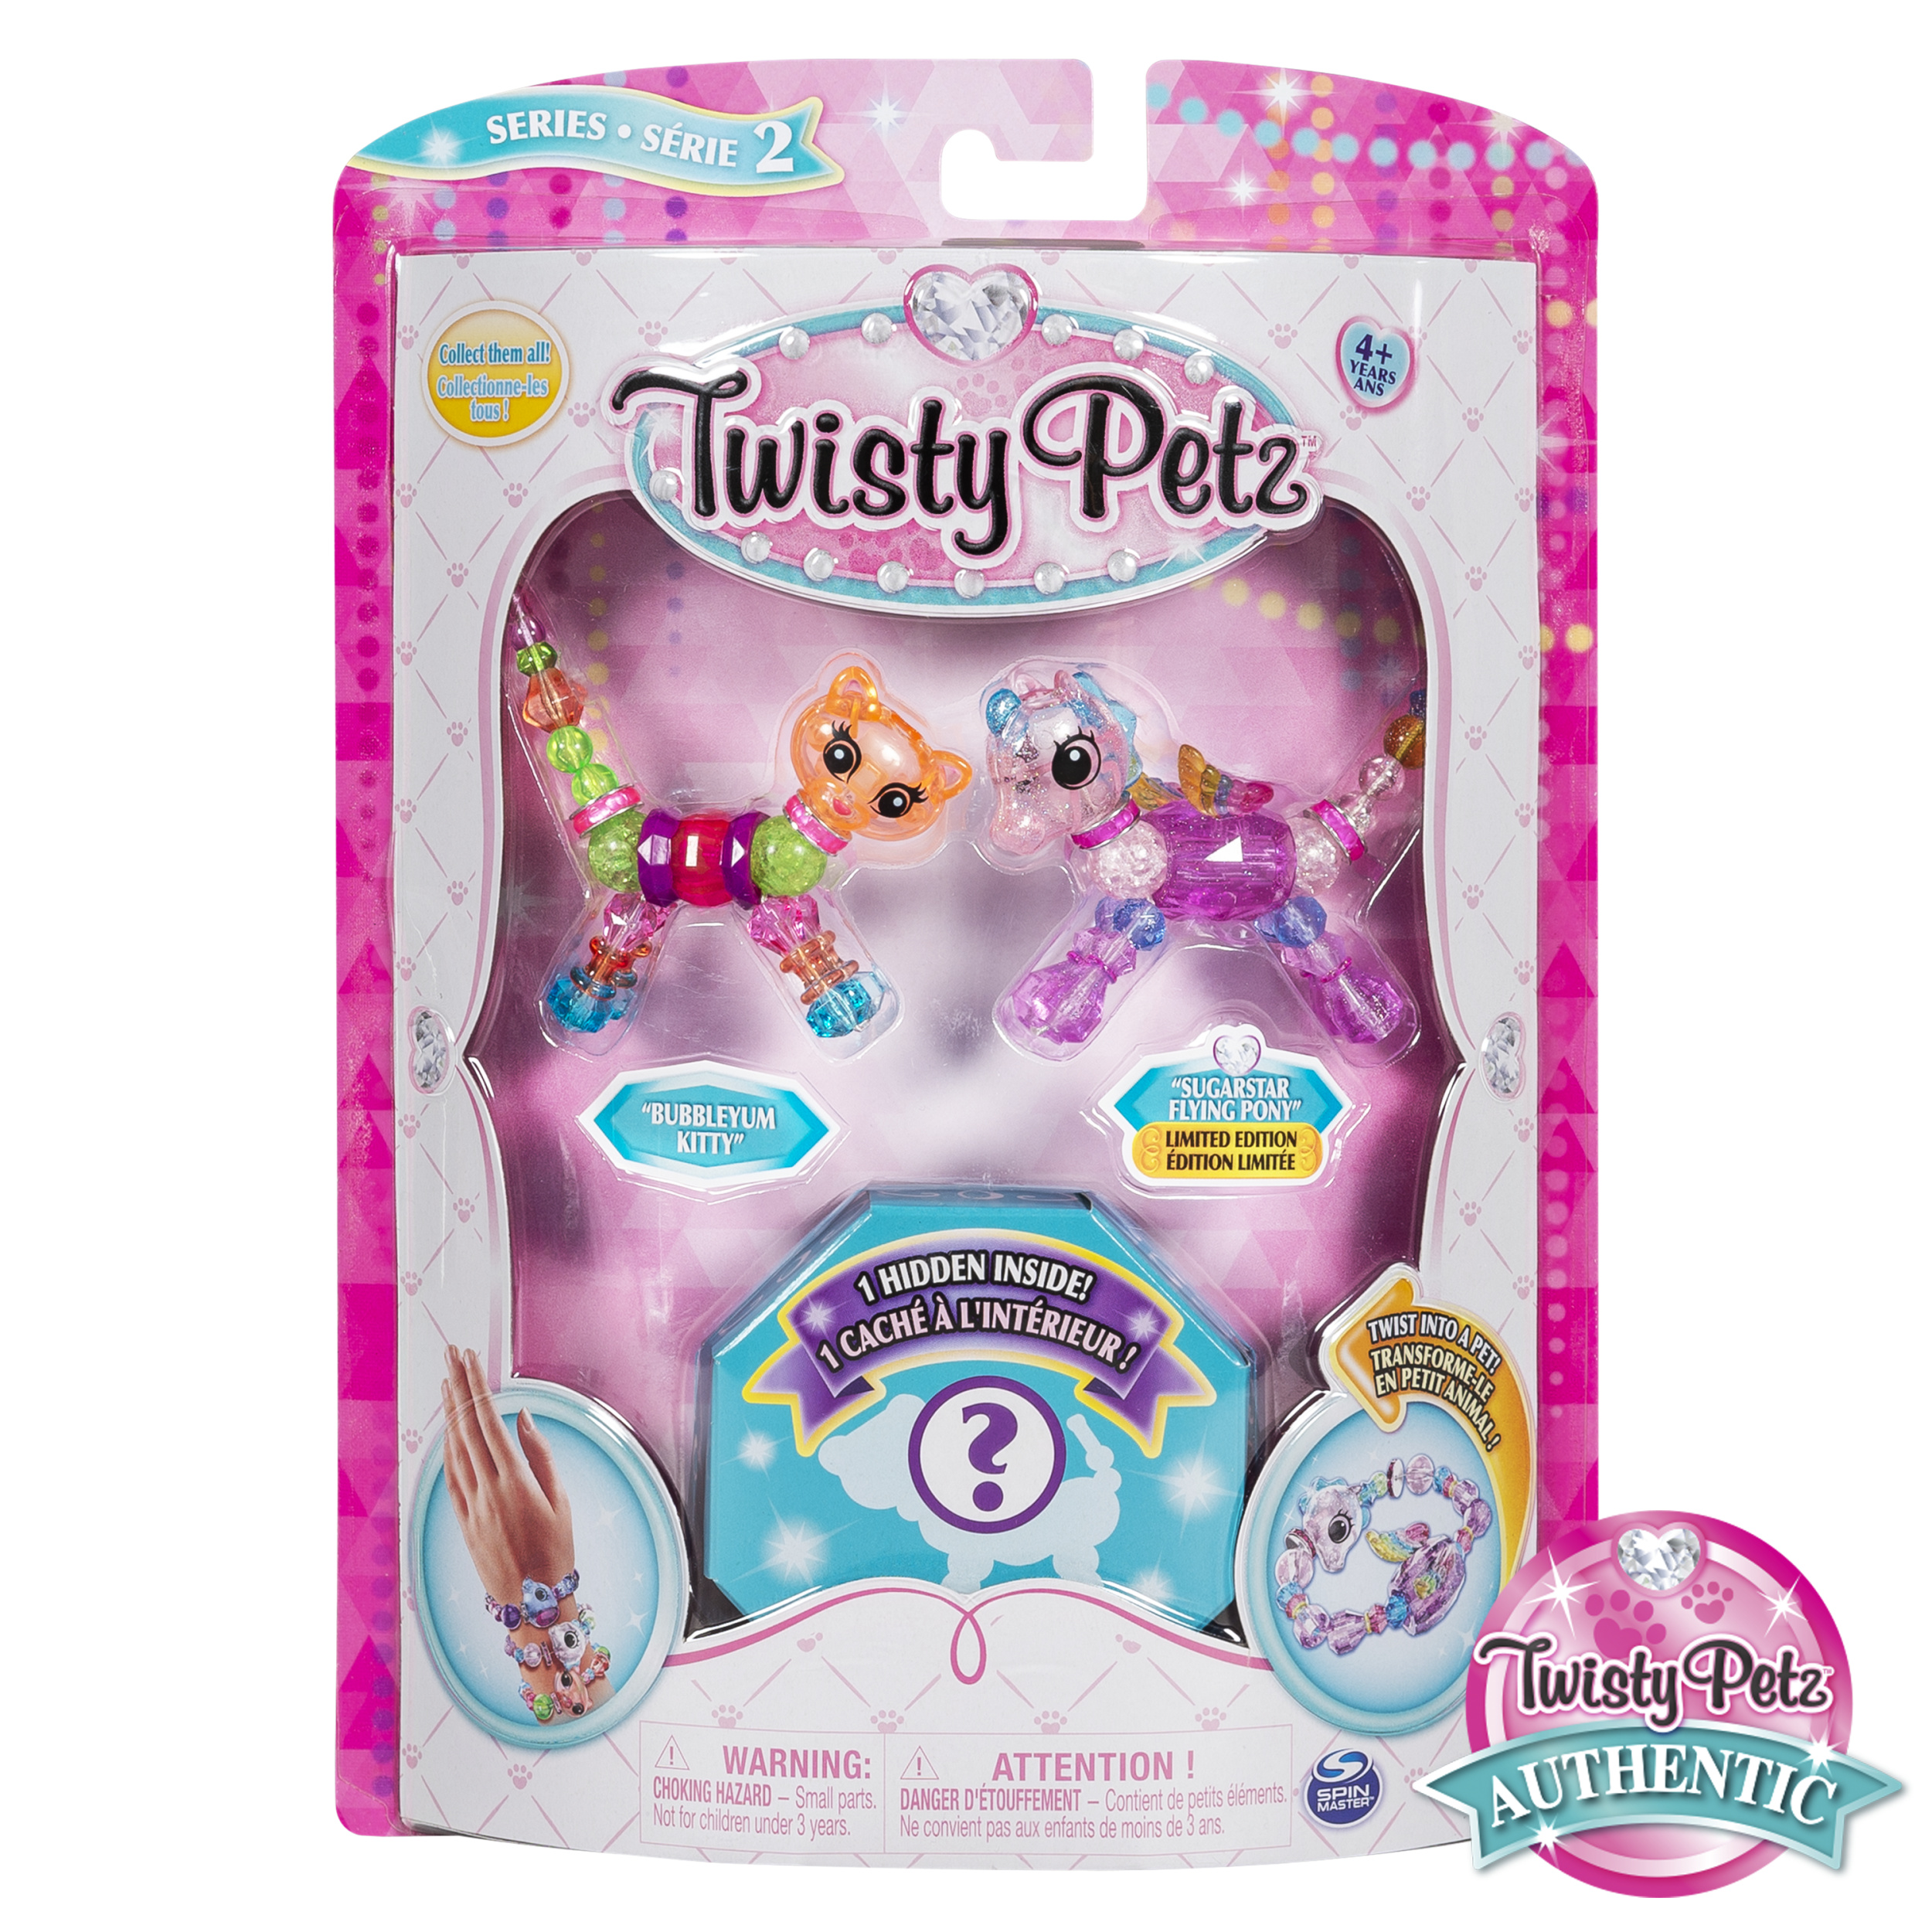 Twisty Petz, Series 2 3-Pack, Bubblegum Kitty, Sugarstar Flying Pony and Surprise Collectible Bracelet Set for Kids